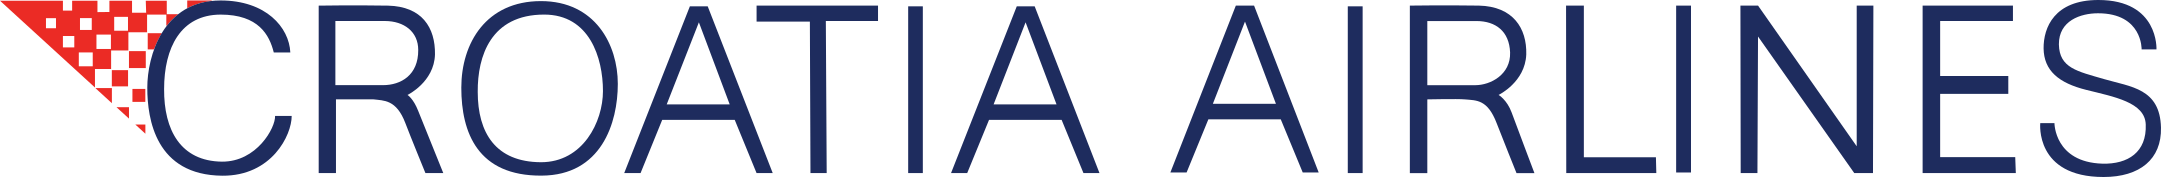 croatia airlines logo 1 - Croatia Airlines Logo